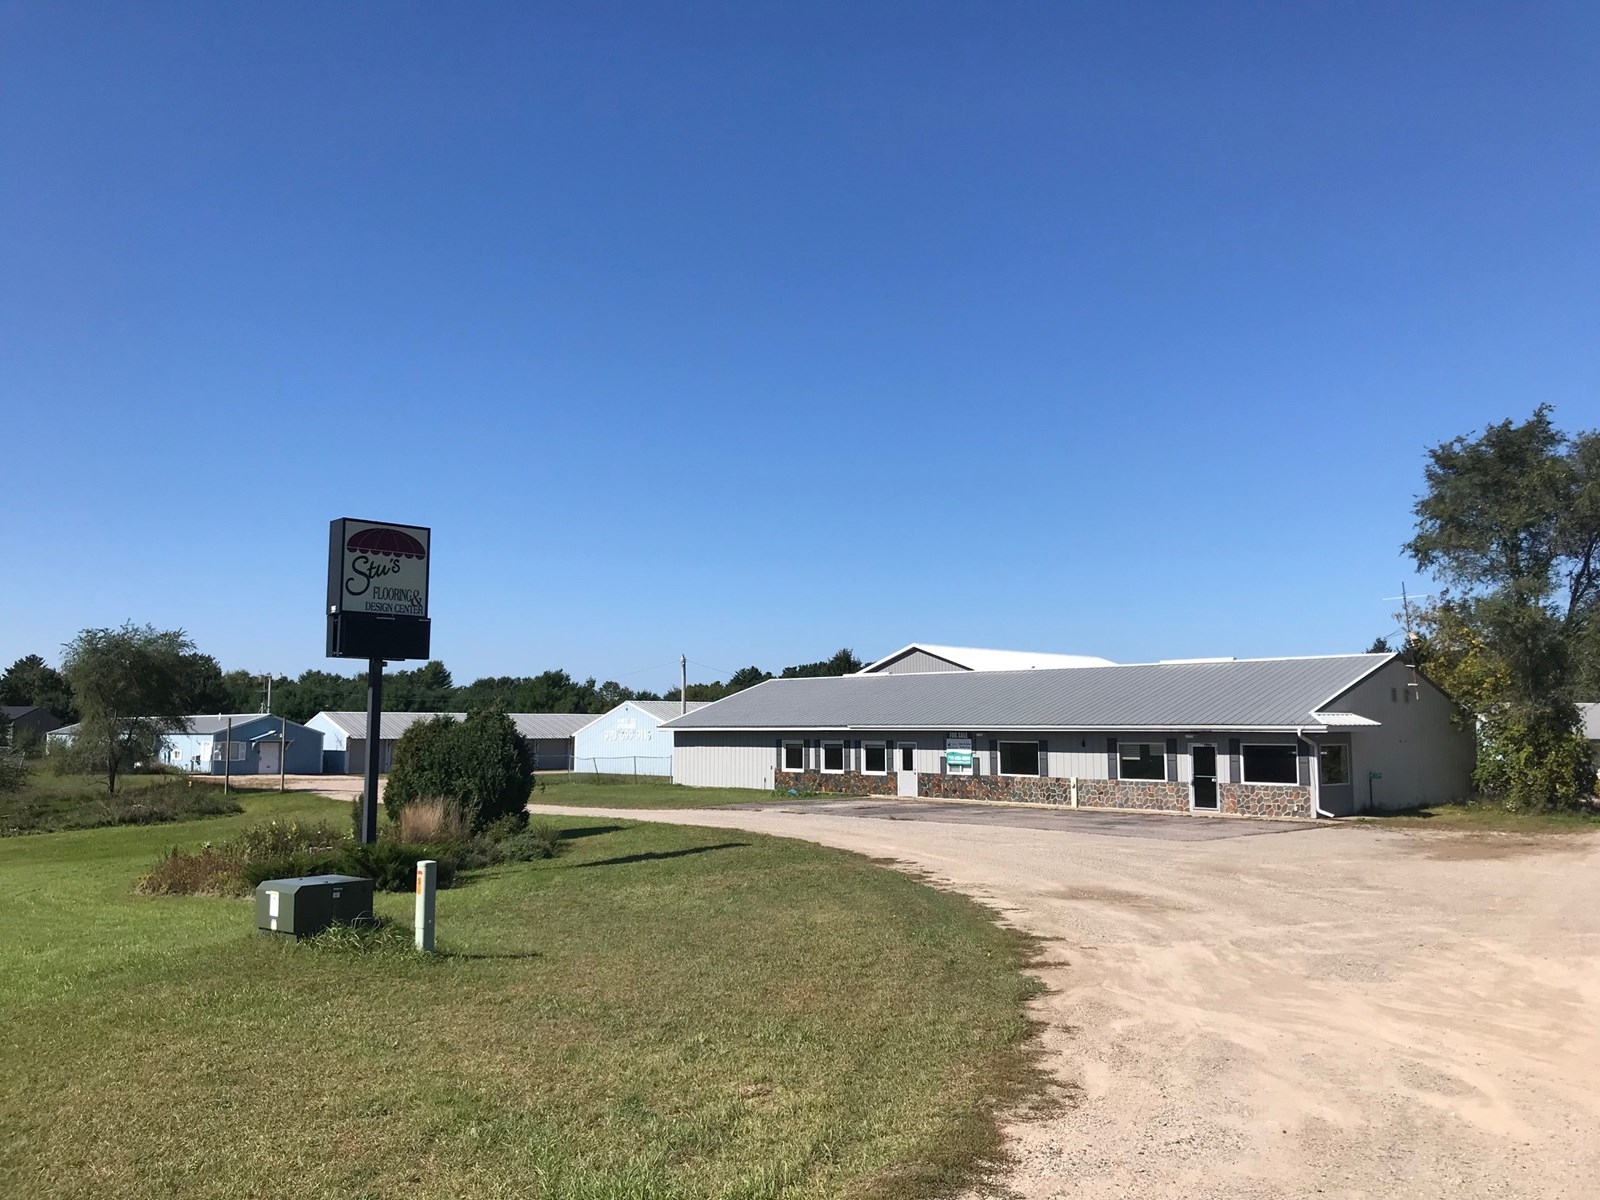 Commercial Property for Sale in Waupaca Near Chain O' Lakes